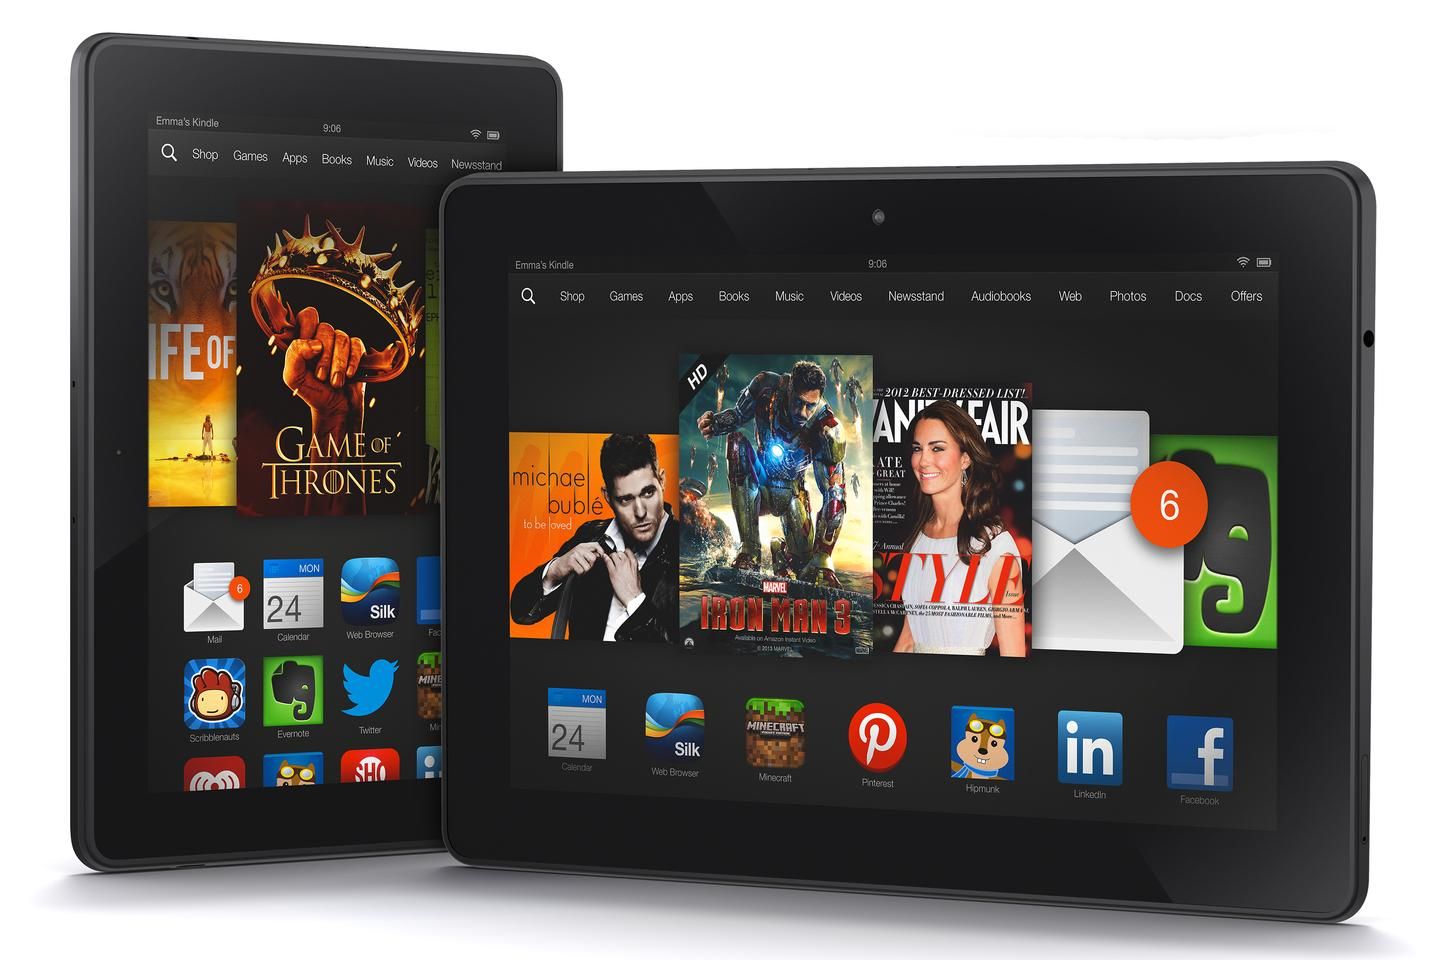 The new Amazon Kindle Fire HDX and HDX 8.9